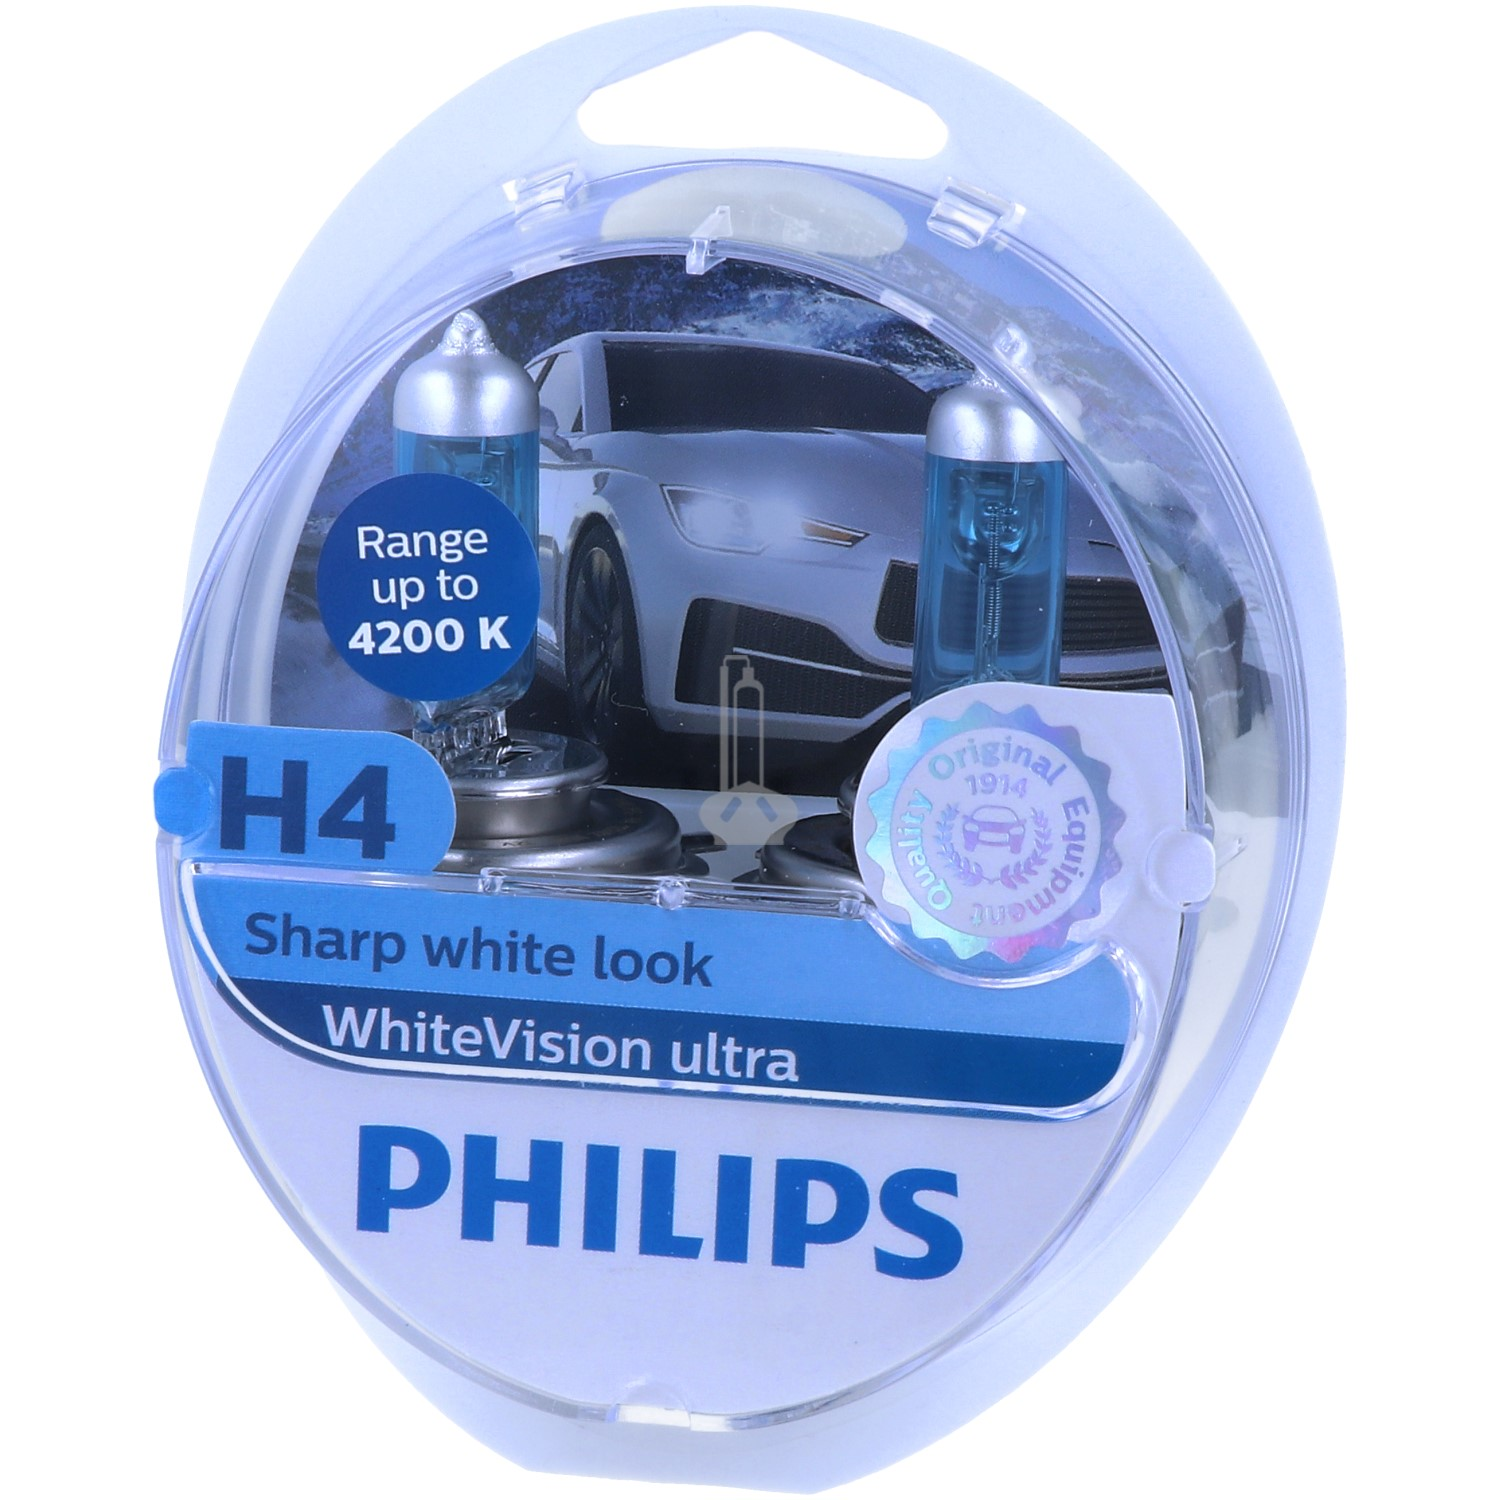 PHILIPS WhiteVision ultra - unwiderstehlicher Look